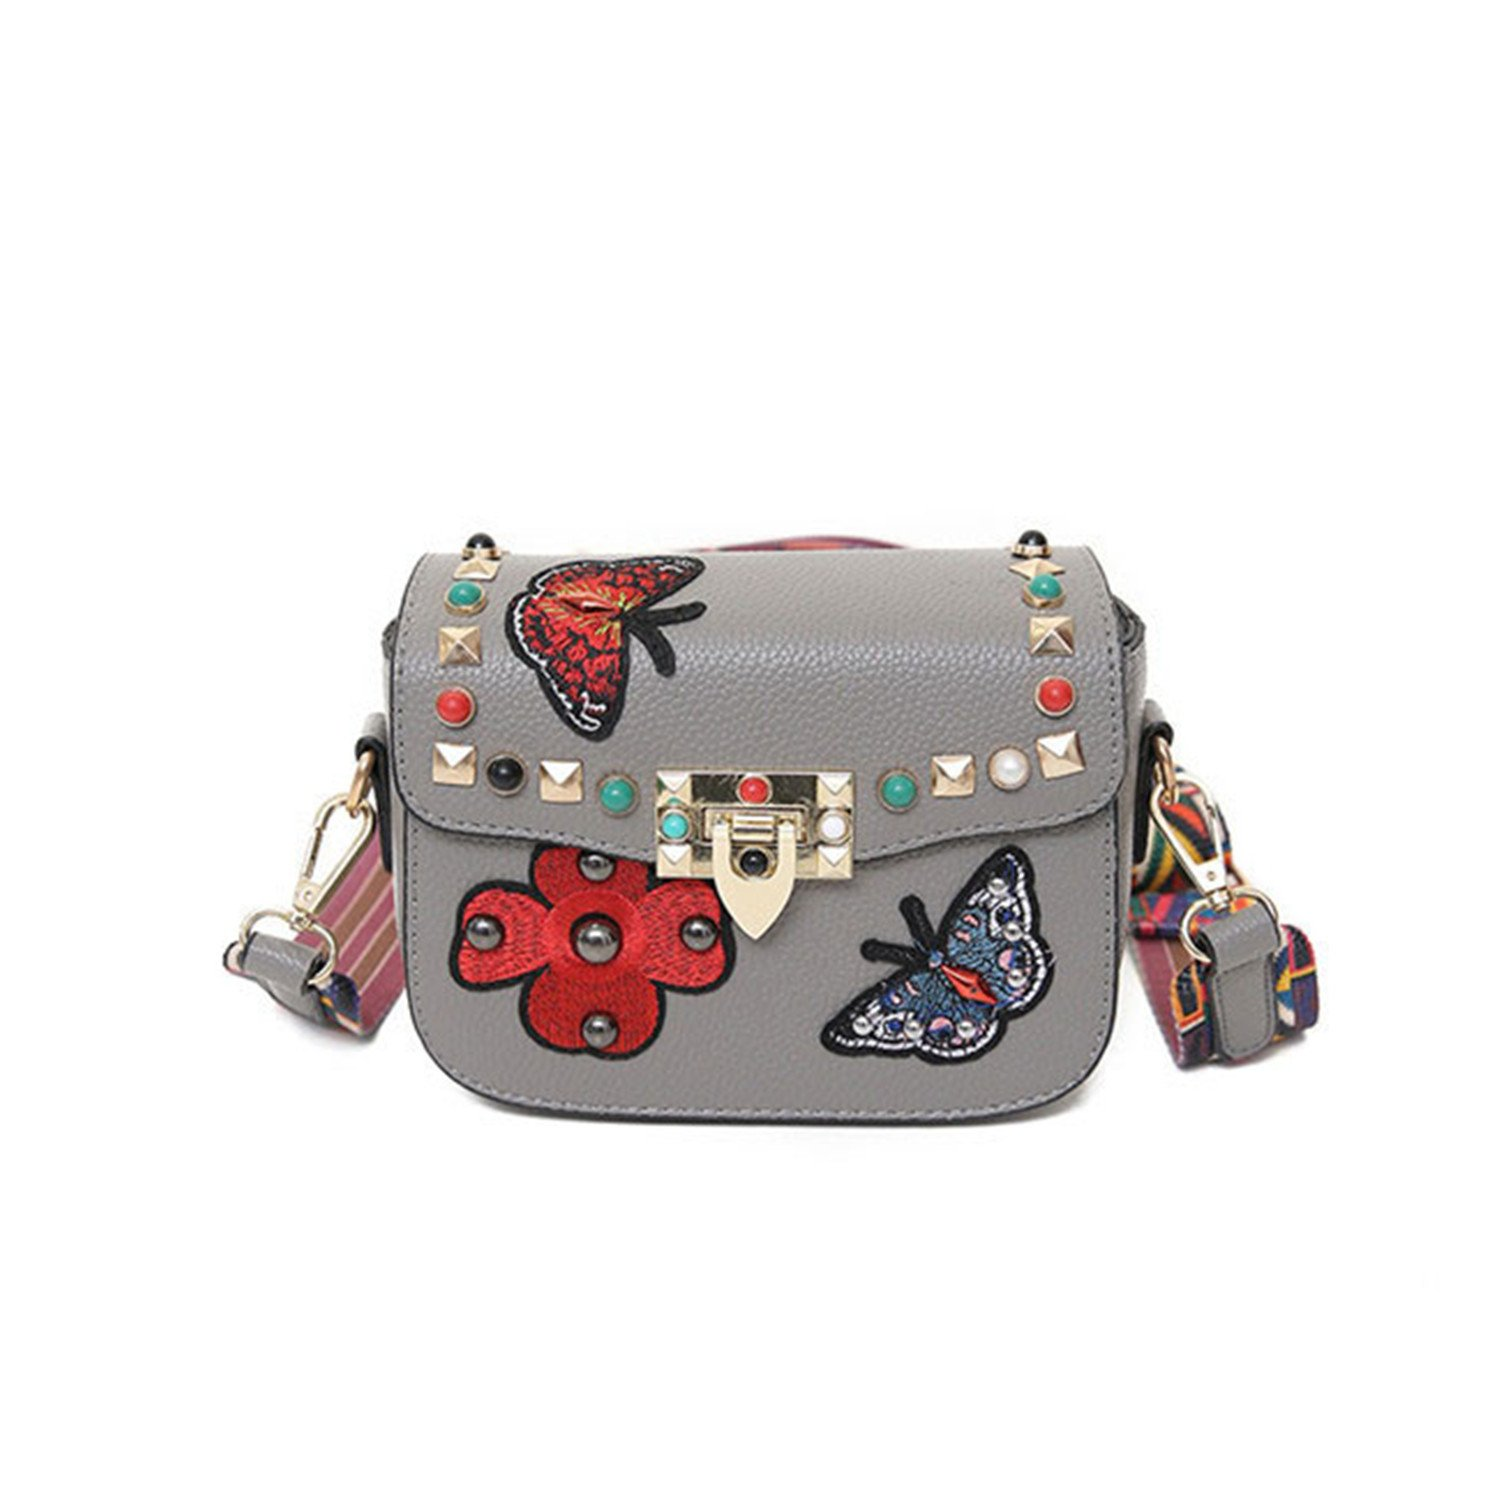 Acereima NEW Butterfly Animal Pattern Fashion Mini Women Bags Rivets Embroidery Floral Bag Designer PU Leather Crossbody Bags Sac A Main Dark gray 2017 ...